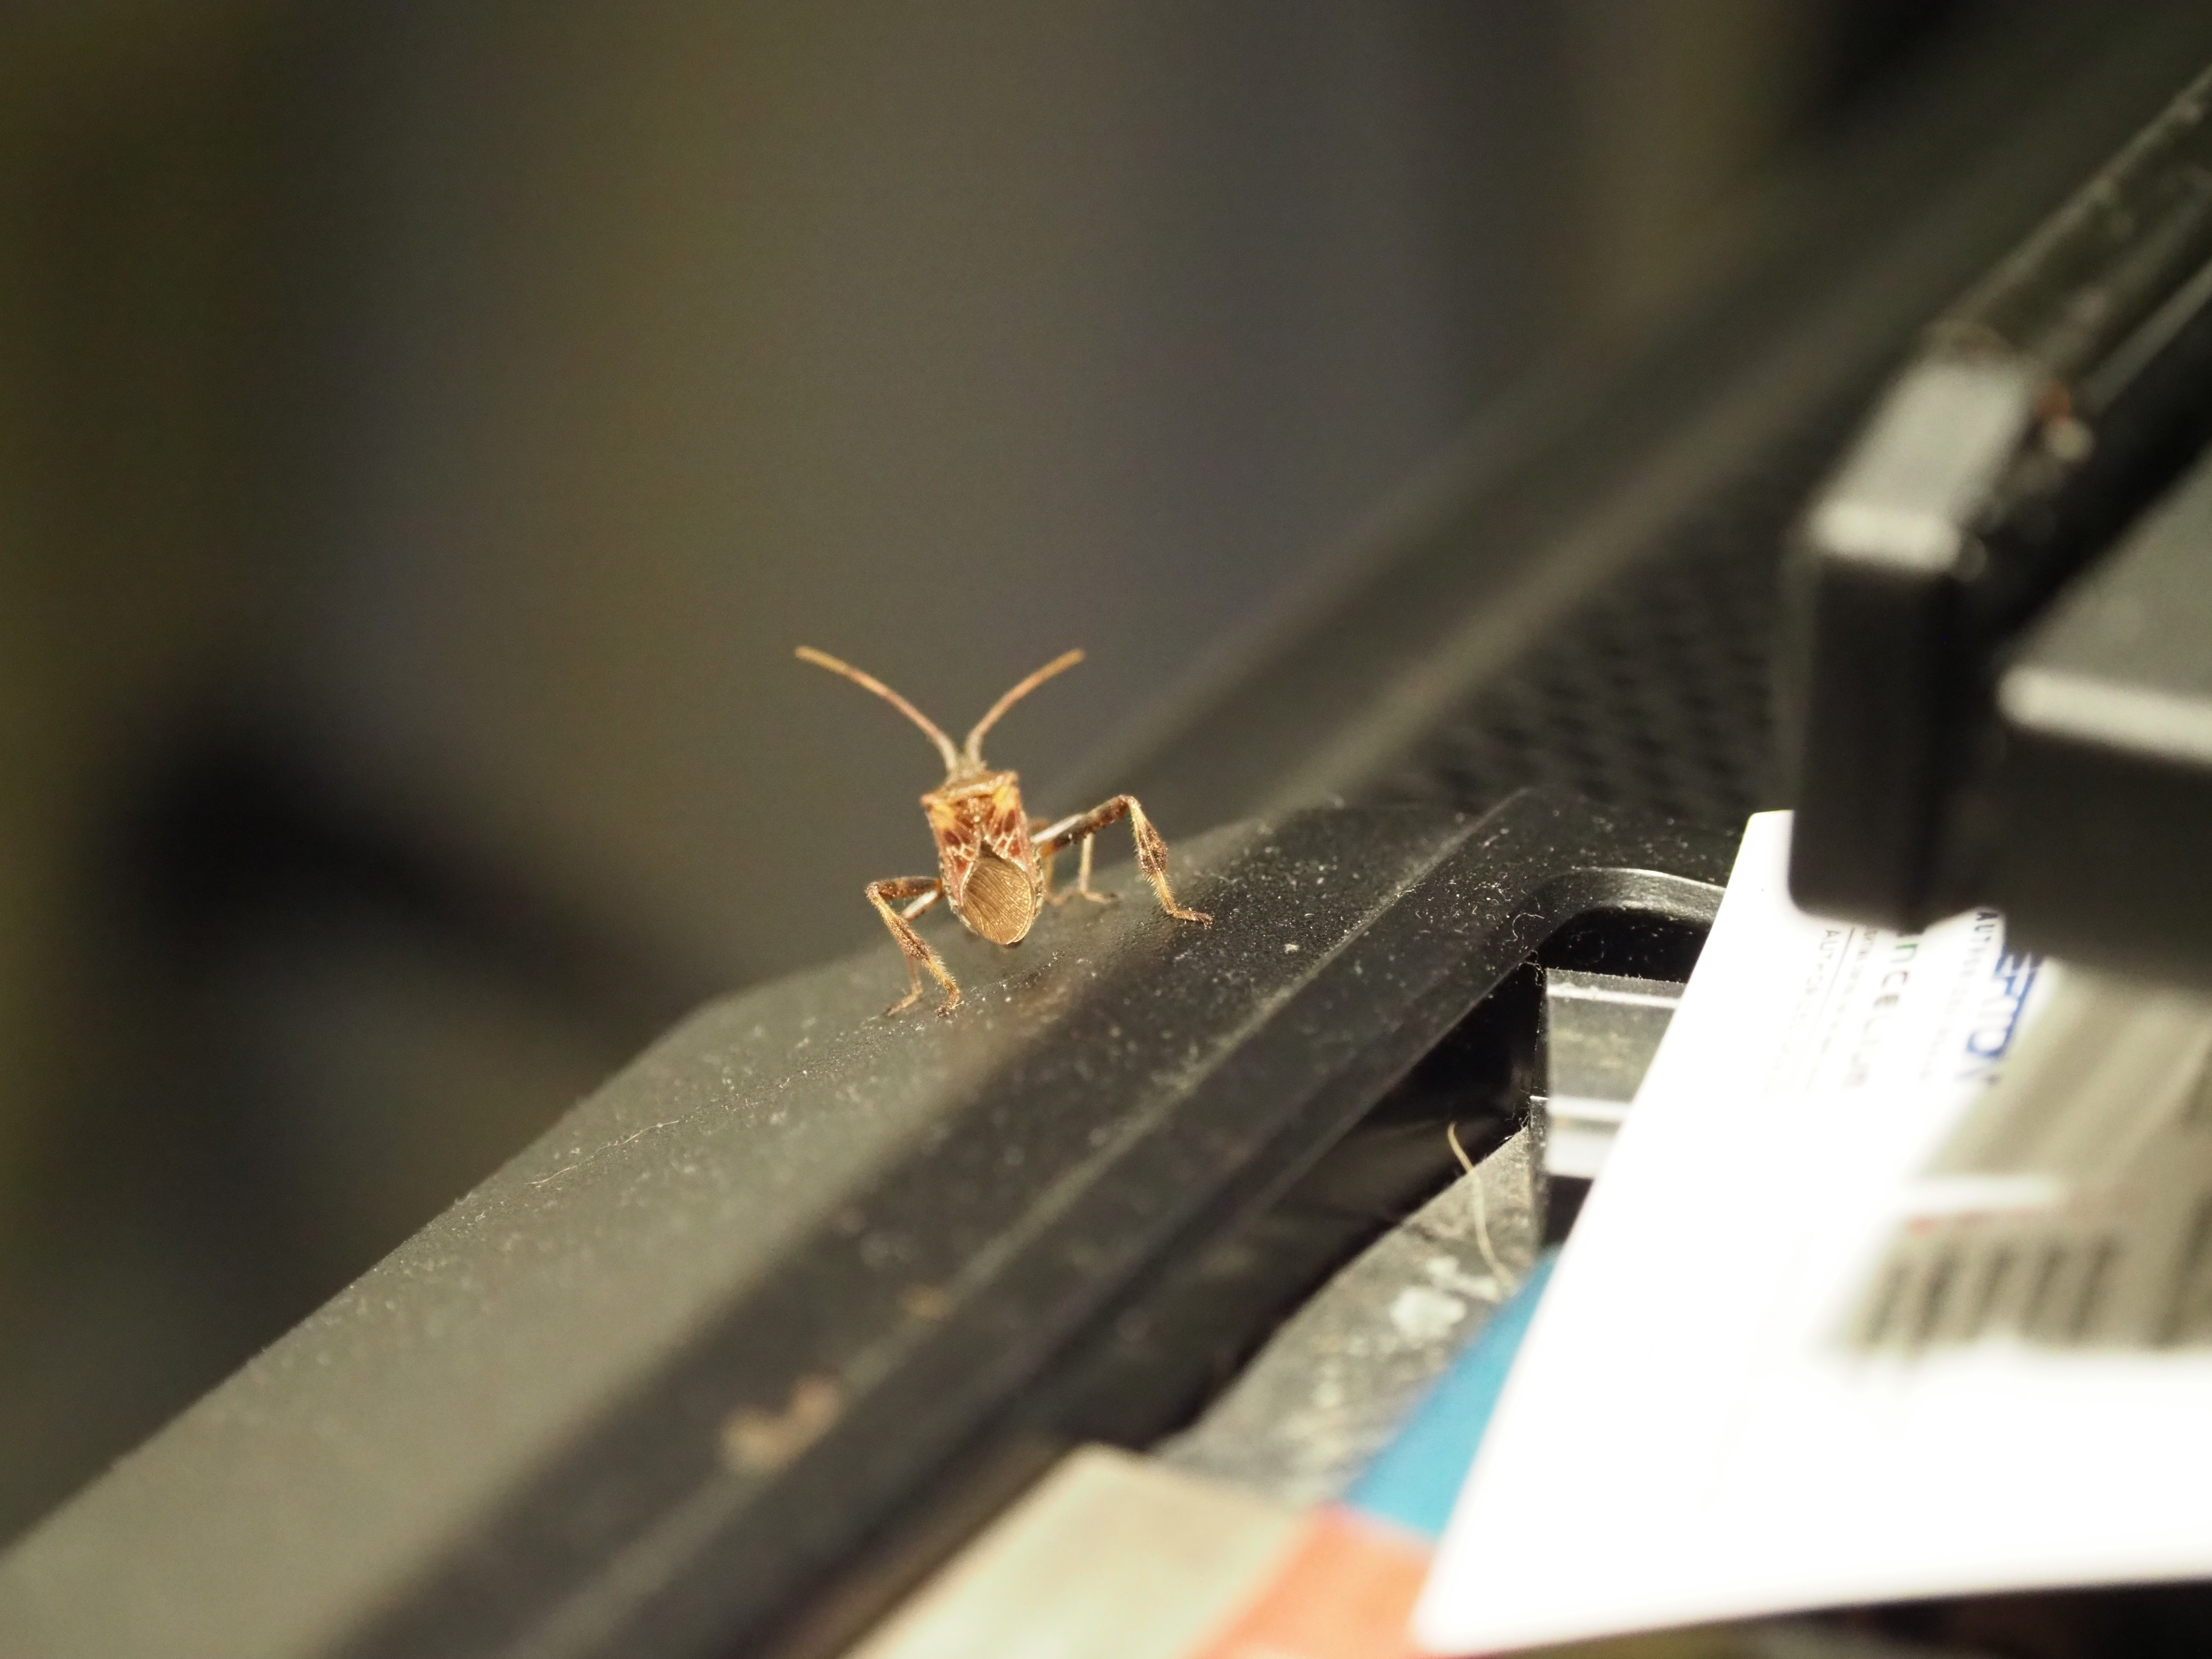 As I was writing this week's column this western conifer seed bug landed on the case of my computer. One of our fall invaders, it emits an evergreen to turpentine odor when crushed but causes no damage when it gets indoors.